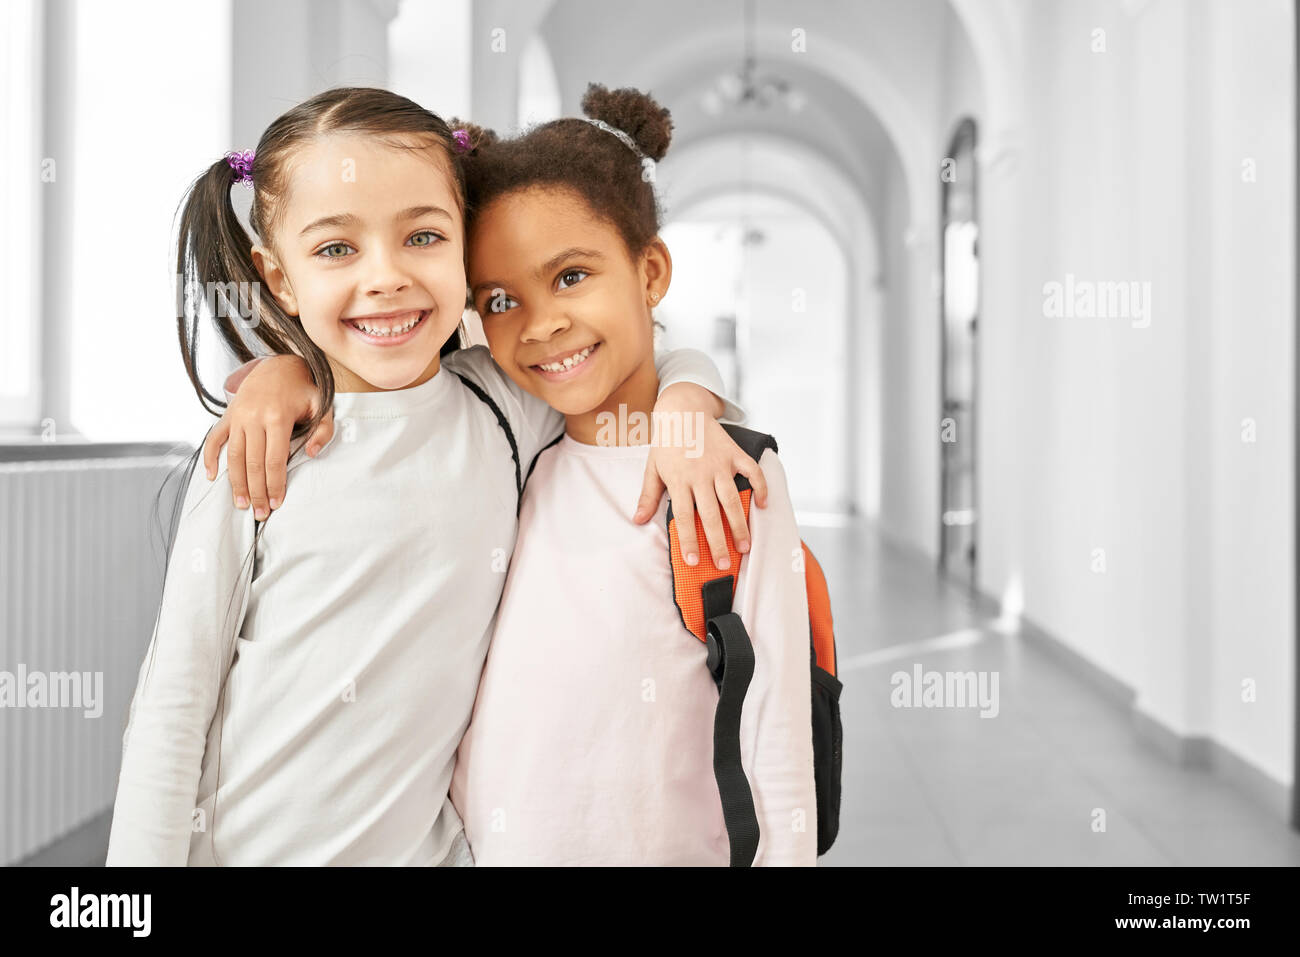 Two Little Girls Best Friends High Resolution Stock Photography And Images Alamy